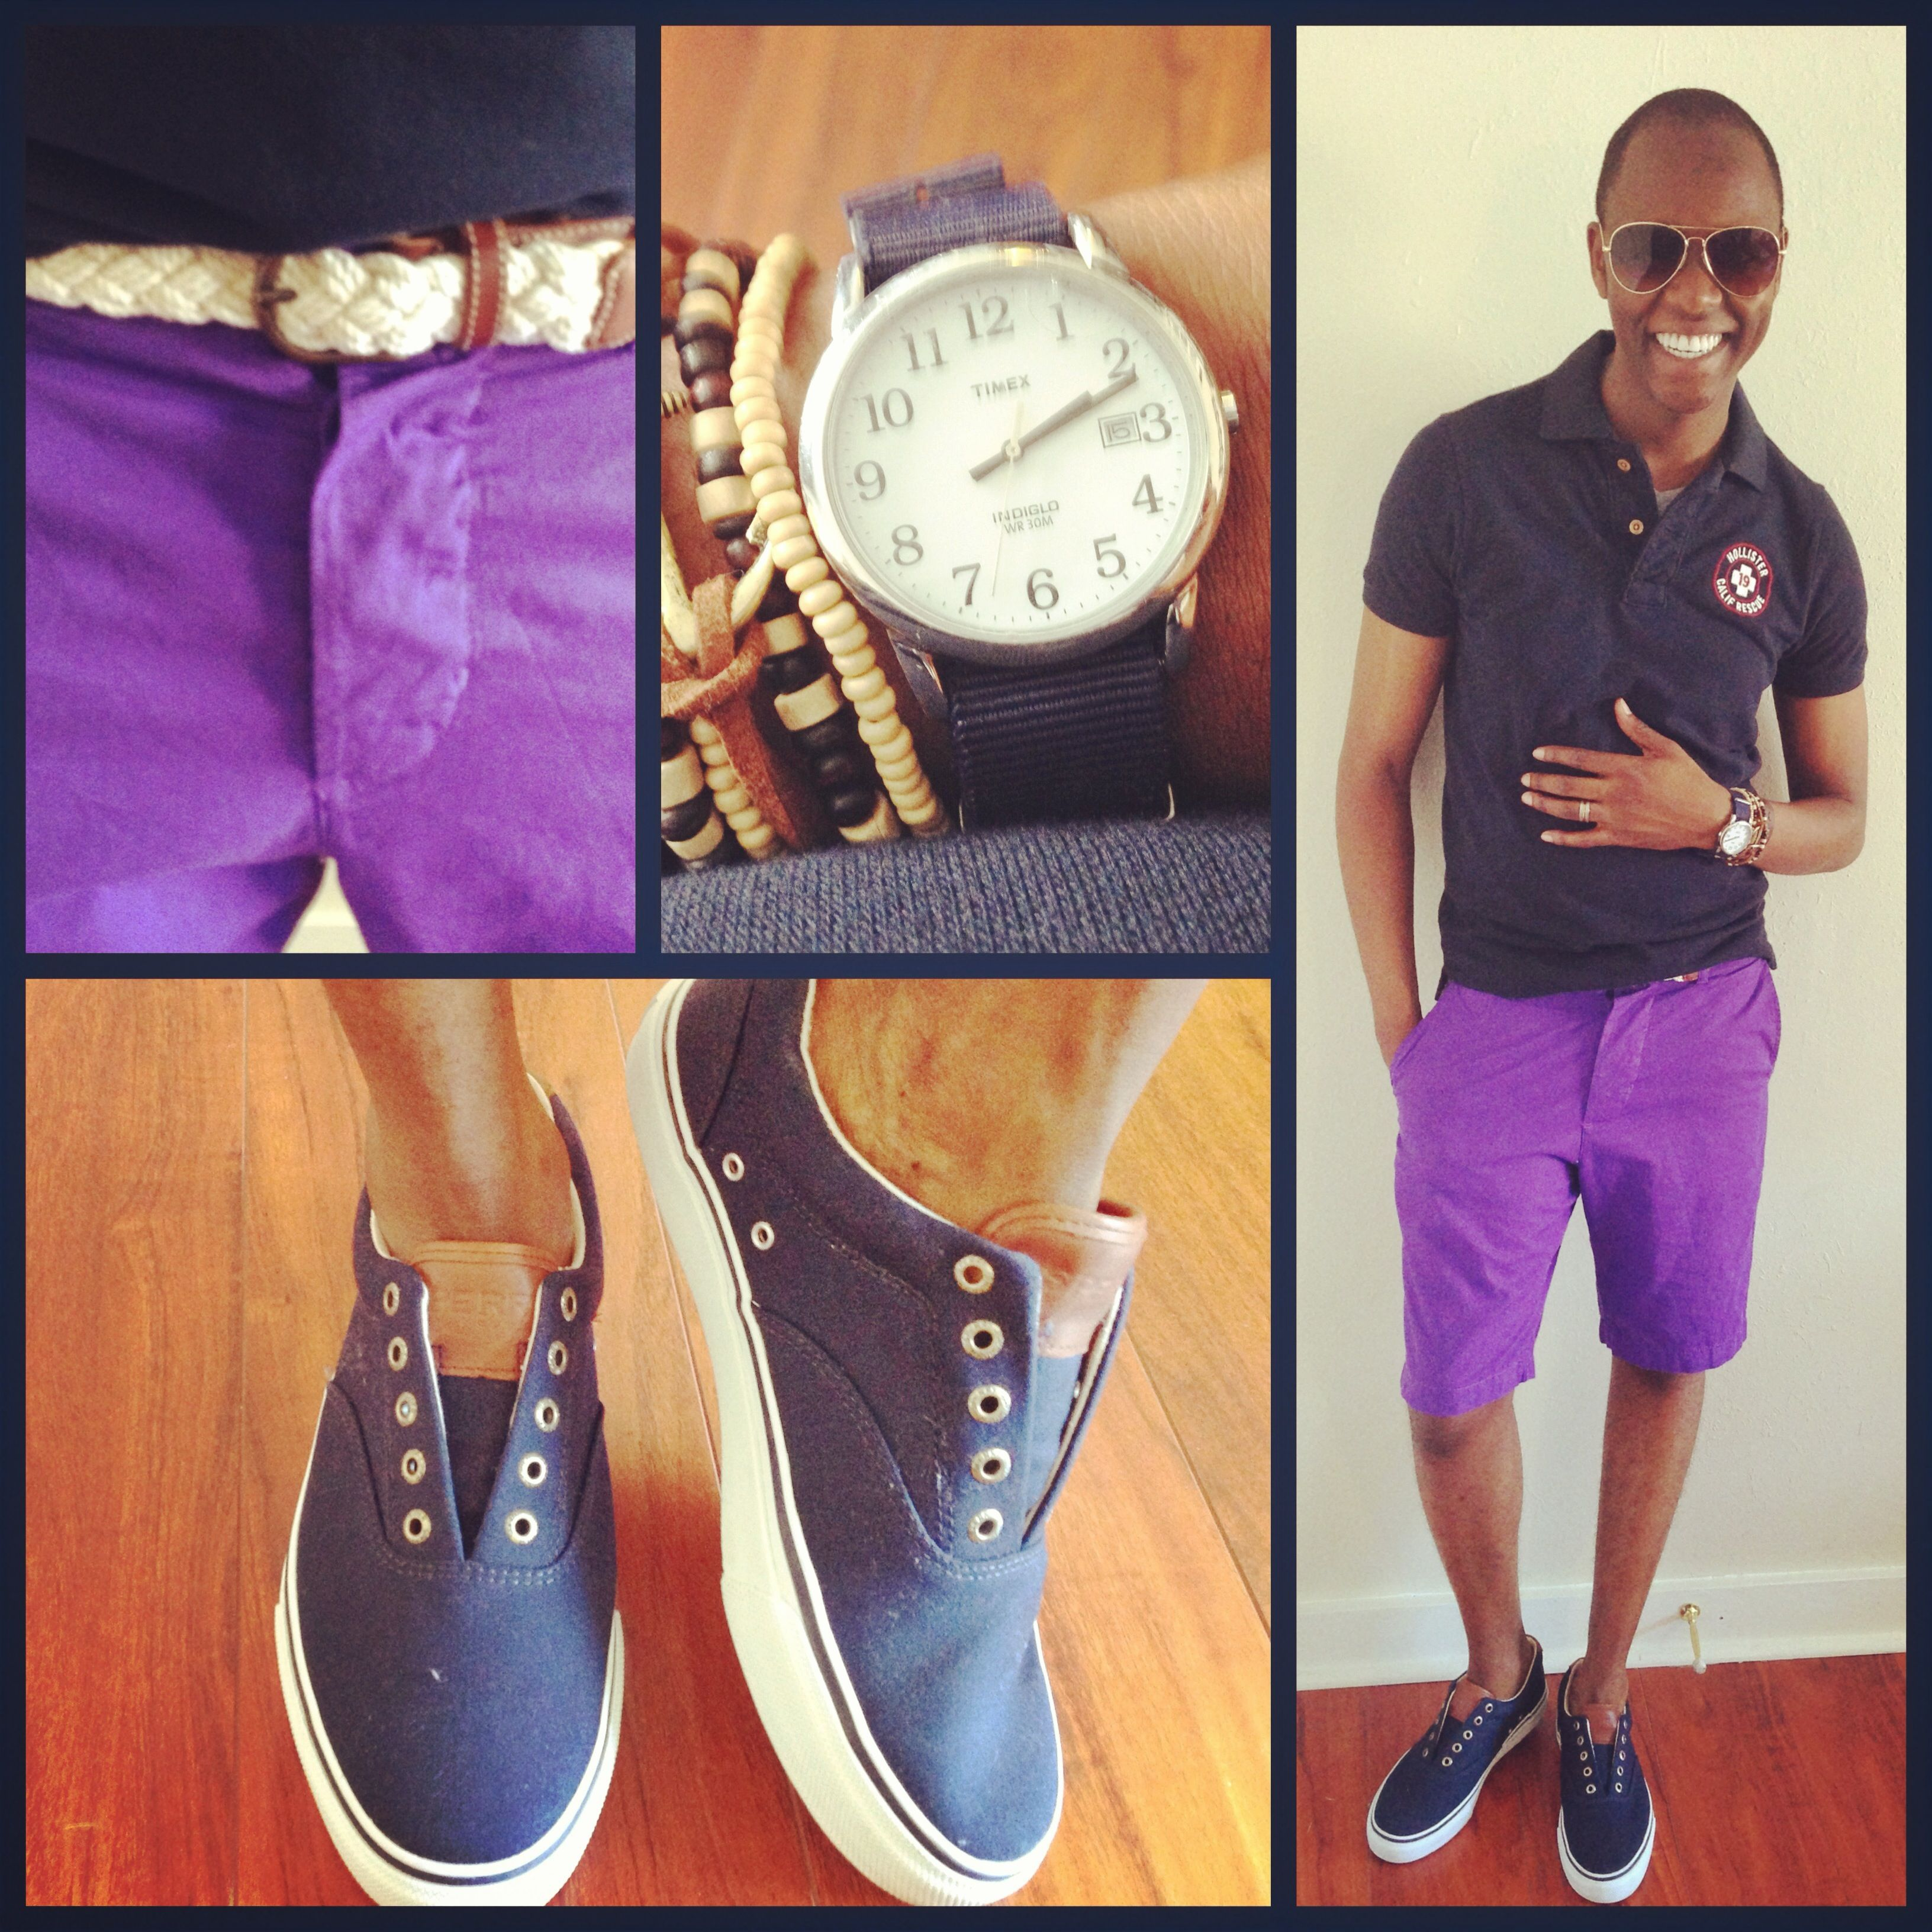 I wish that I could be eleven again   Polo - #Hollister   Belt - #Jcrew  Shorts - #HandM  Shoes - #SperryTopsider  Watch - #Timex  Glasses - #TopMan